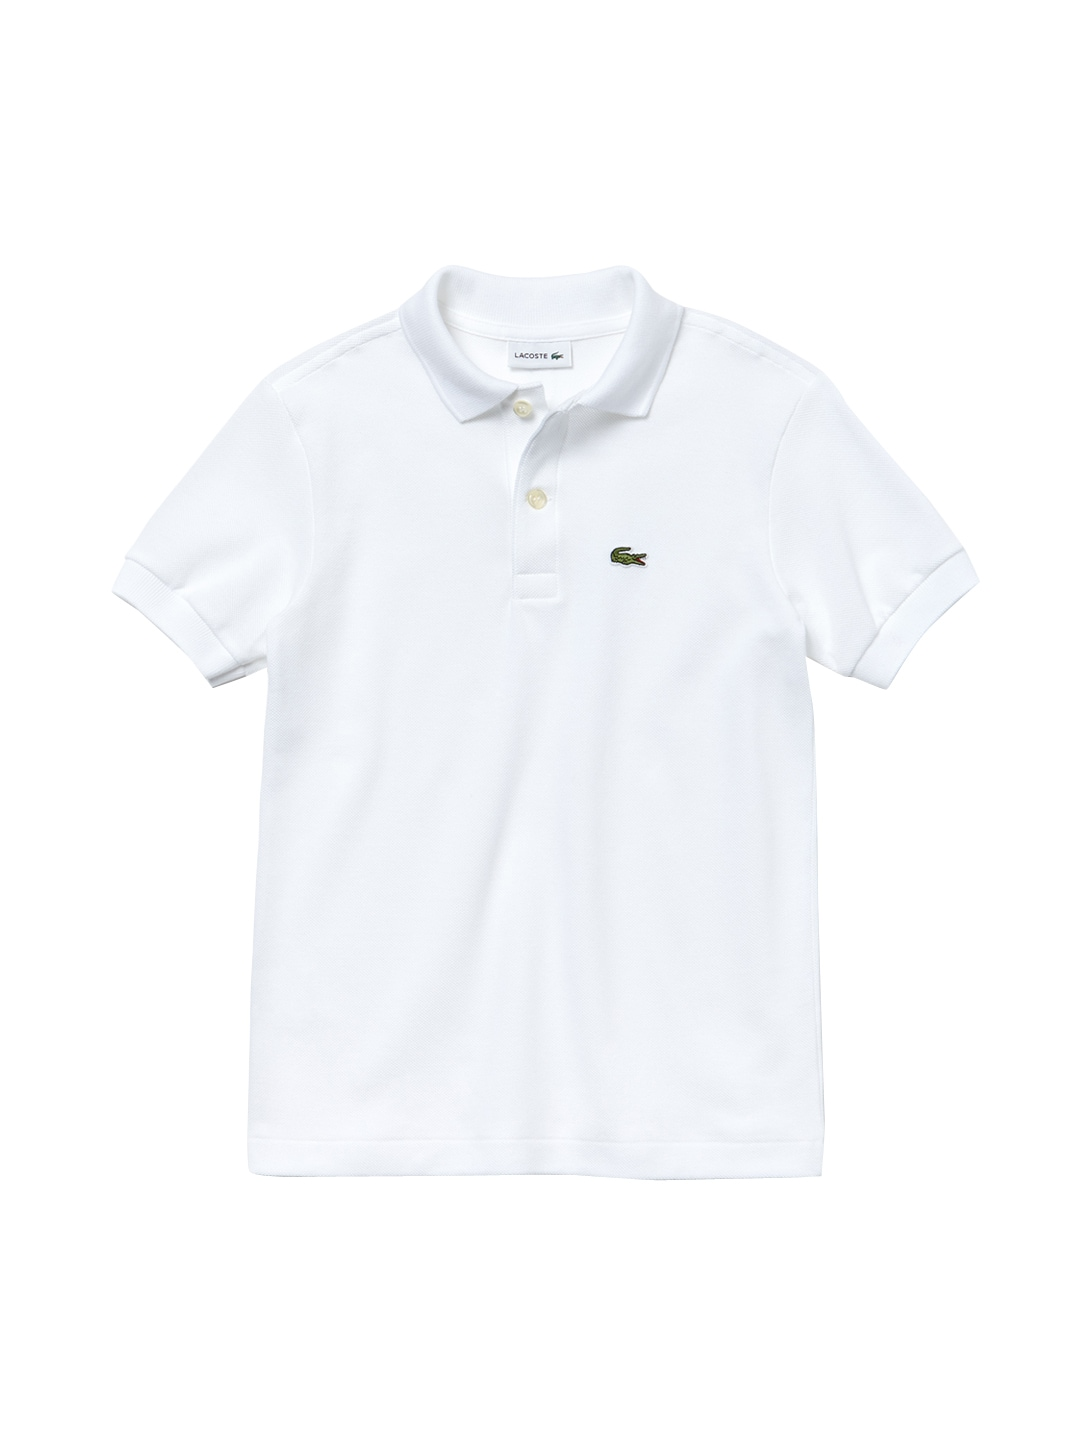 e8c826e4f6d3 Lacoste - Buy Clothing   Accessories from Lacoste Store